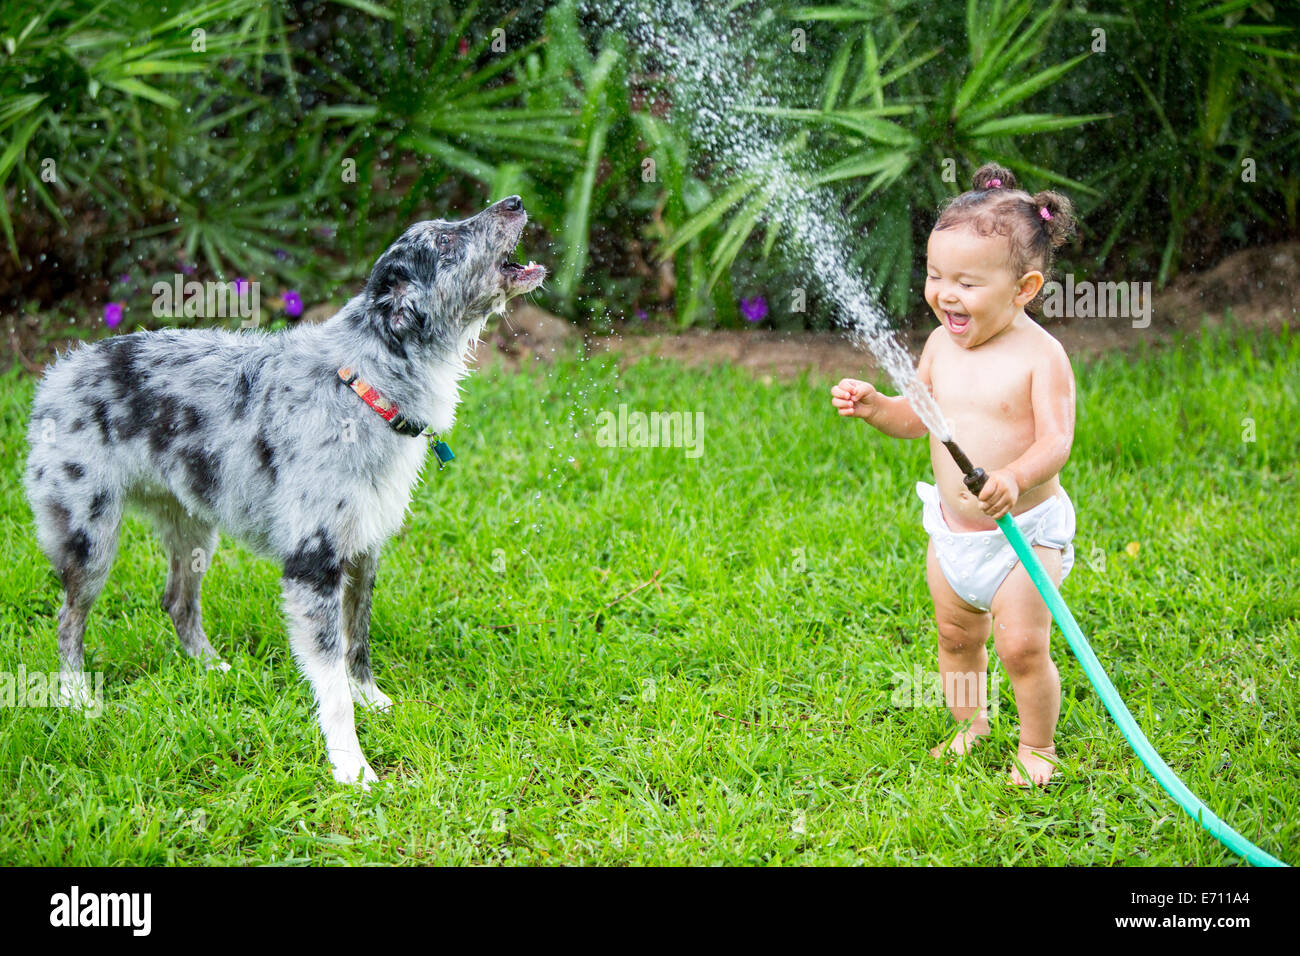 Toddler girl holding water hose, playing with dog - Stock Image